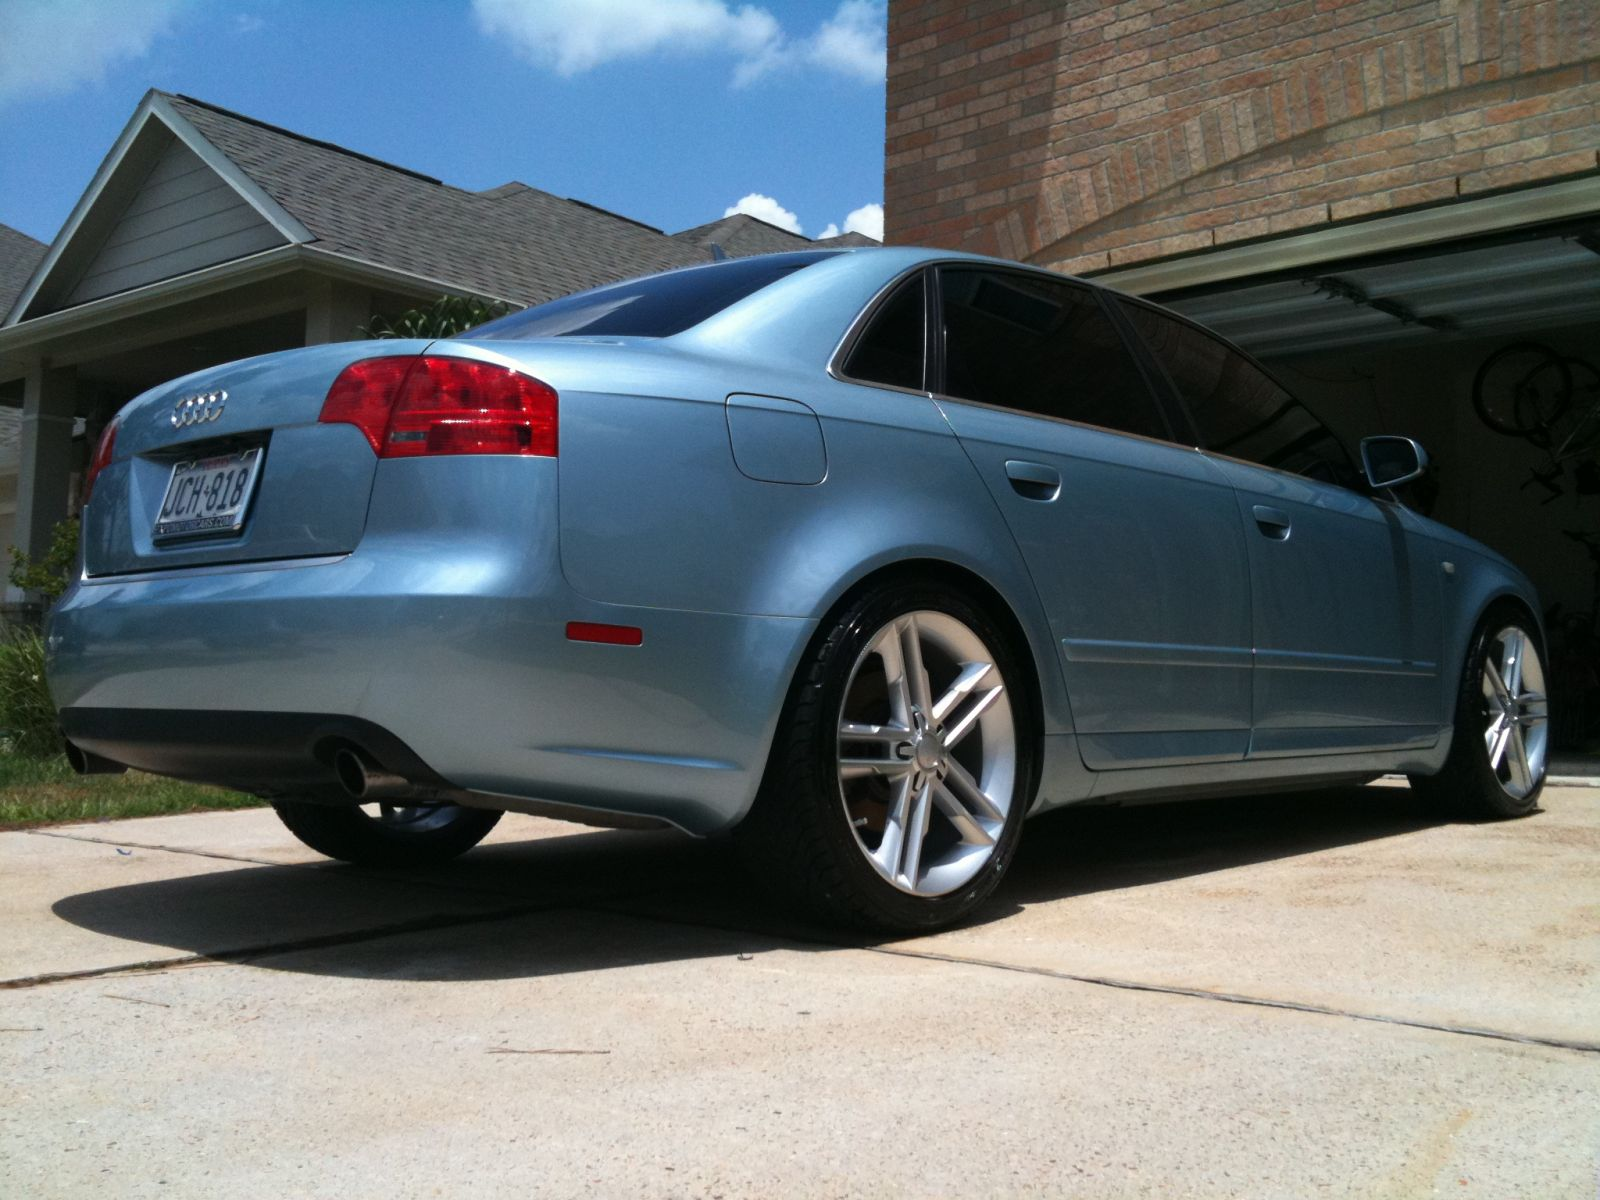 My Liquid Blue Metallic A4